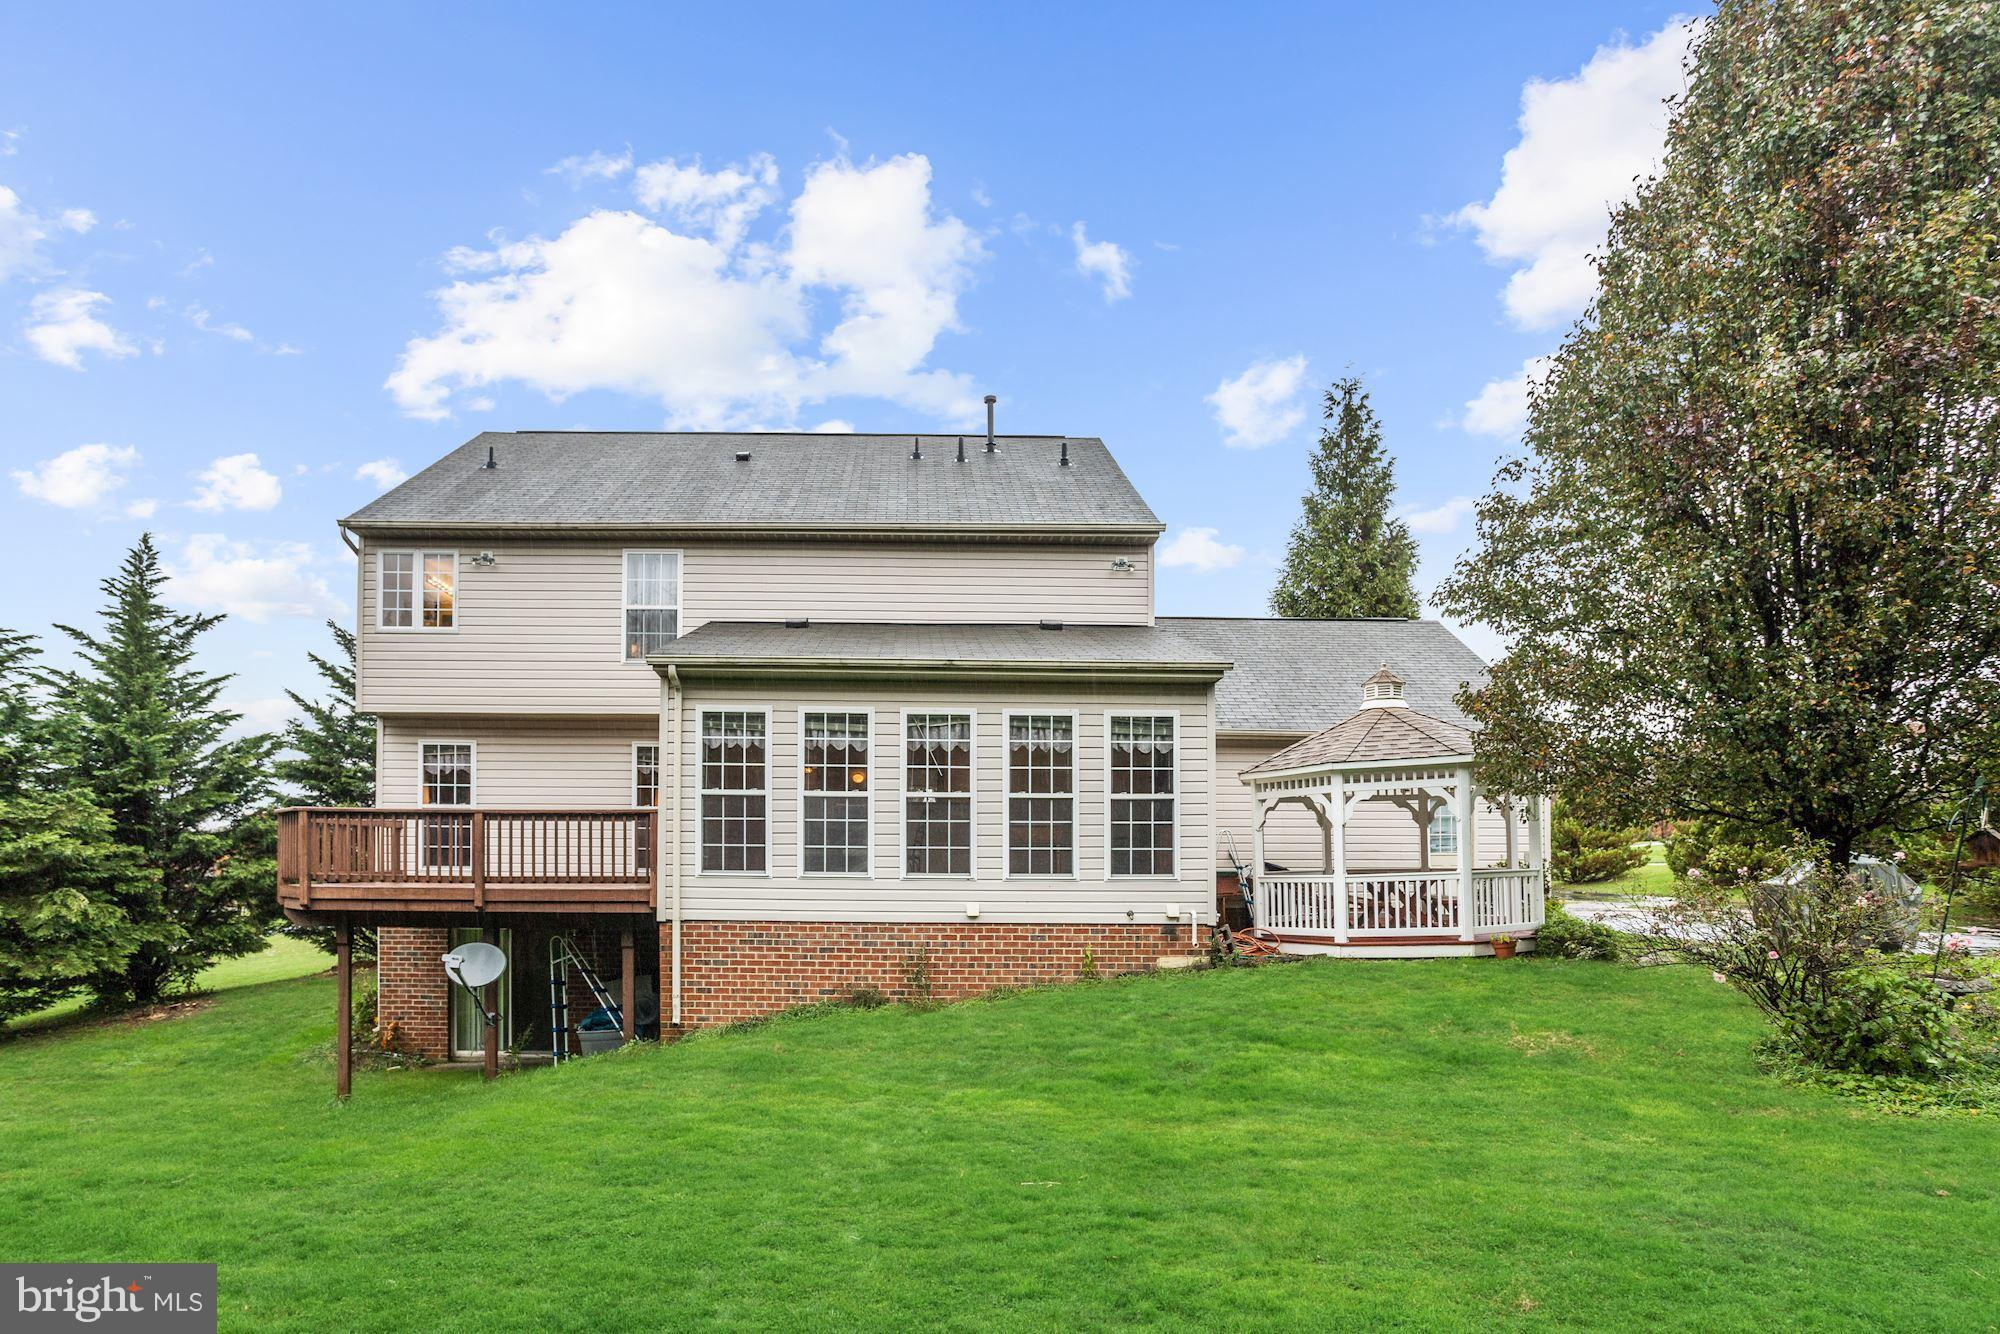 2244 CHEROKEE DRIVE, Westminster, MD 21157